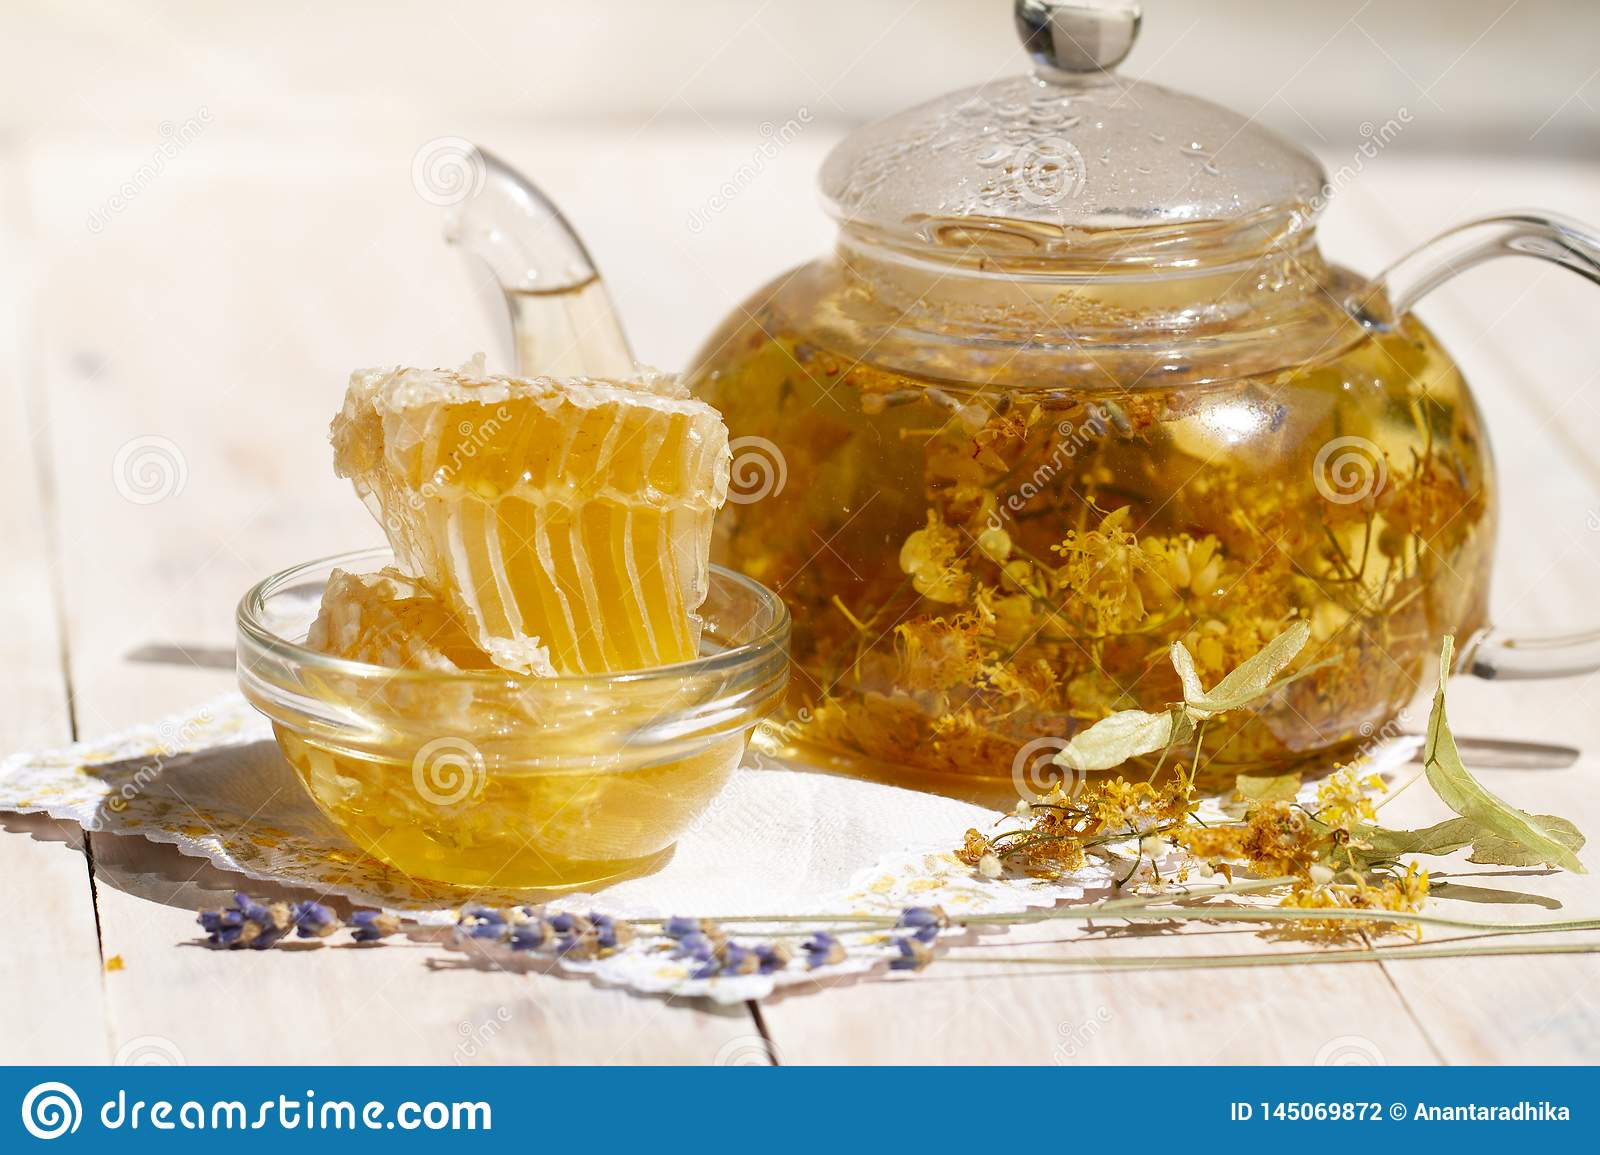 Linden lavender tea and dry linden and lavender flowers on white wooden table. Fresh Honey comb. glass teapot of herbal